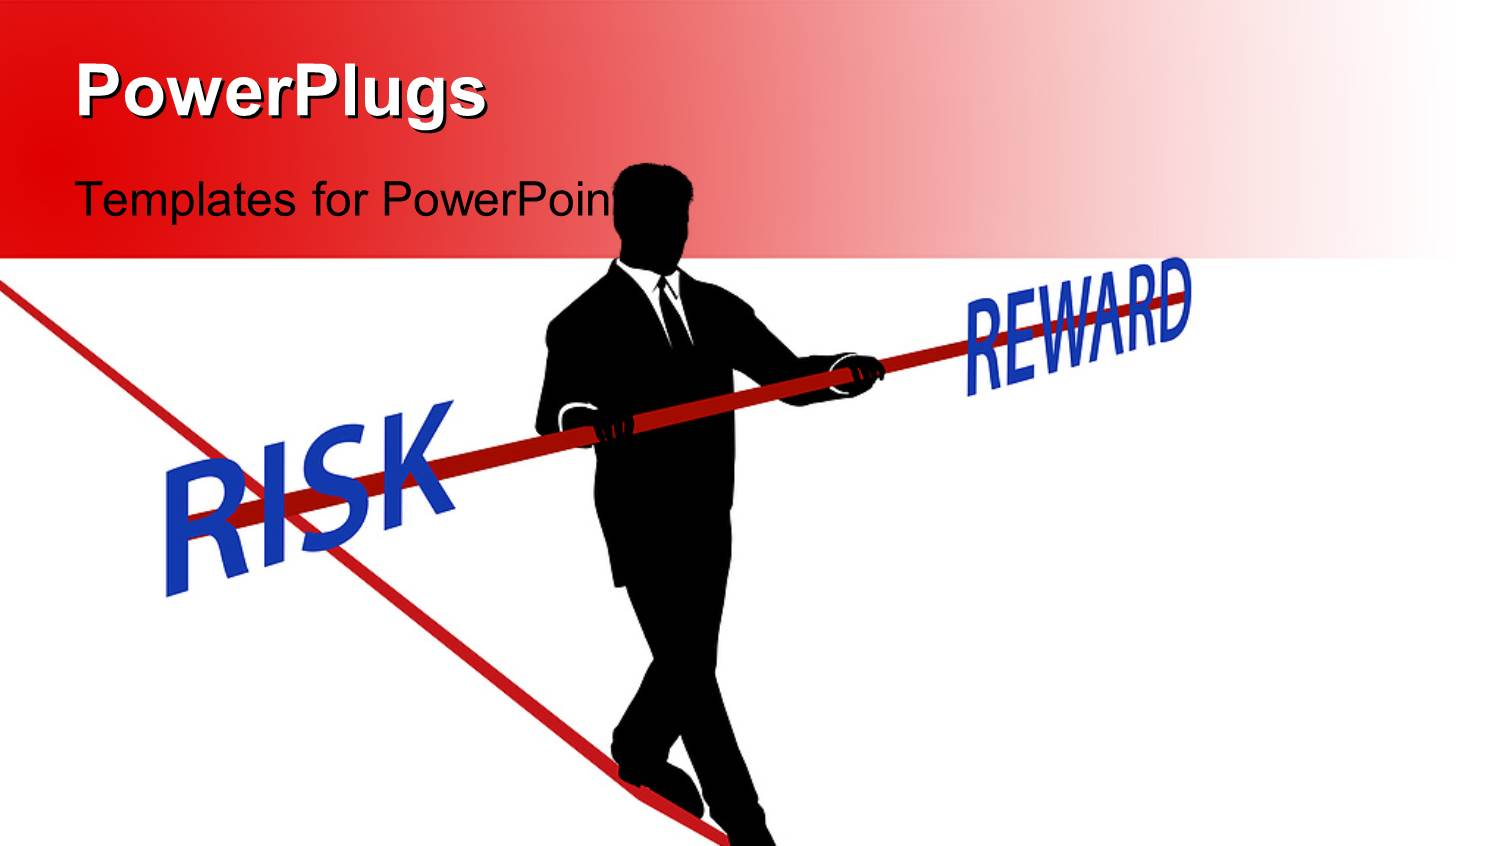 Free powerpoint templates 2529 html free ppt powerpoint templates - Powerplugs Powerpoint Template With A Person Walking On A Dangerous Path